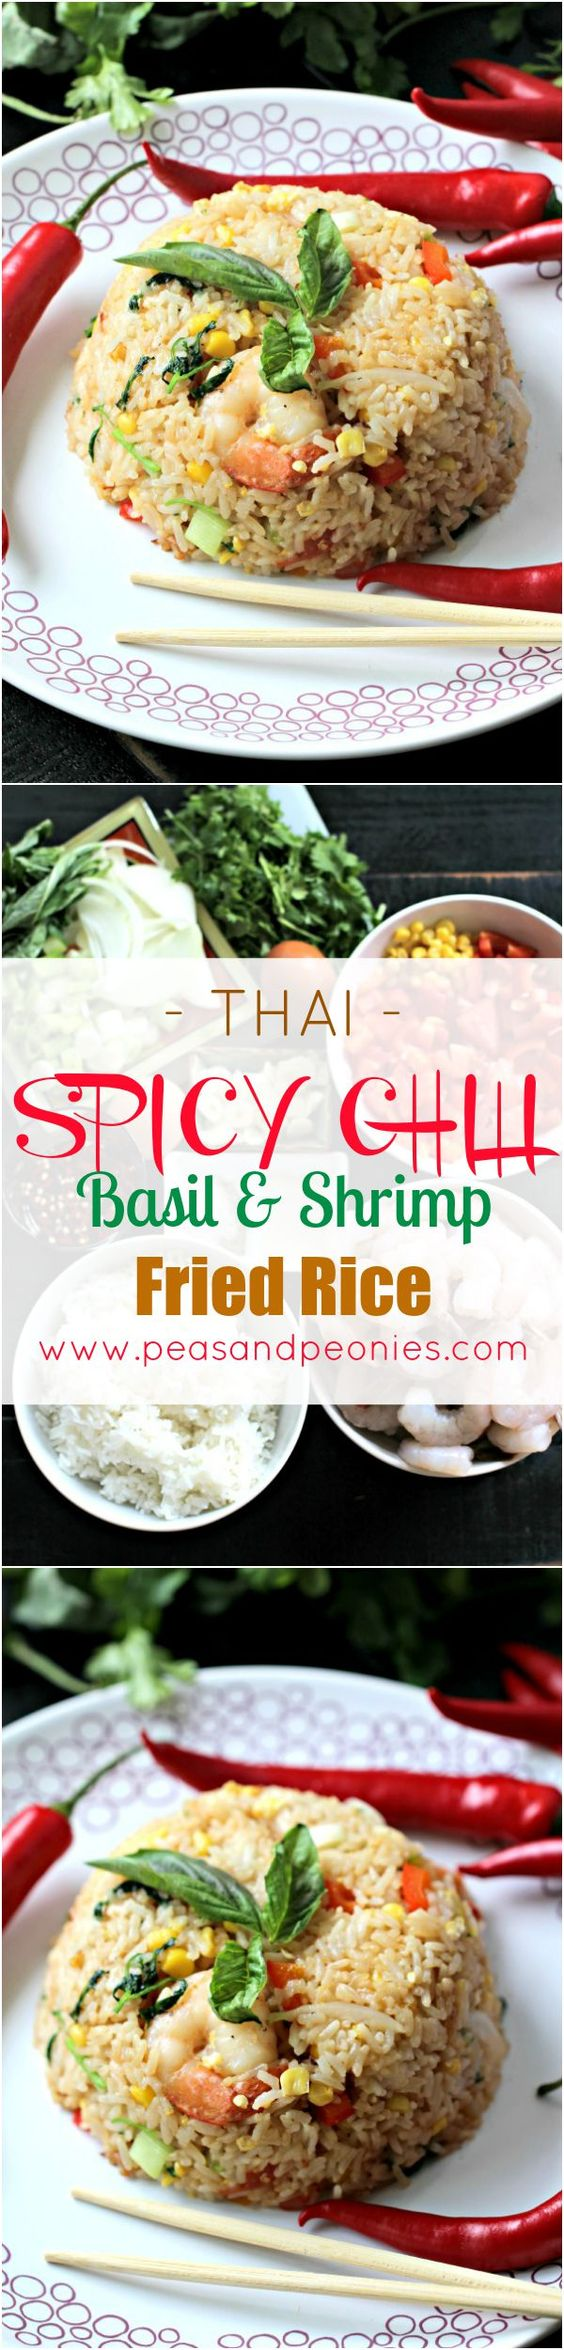 Thai Fried Rice with Shrimp and Chili Peppers - Peas and Peonies